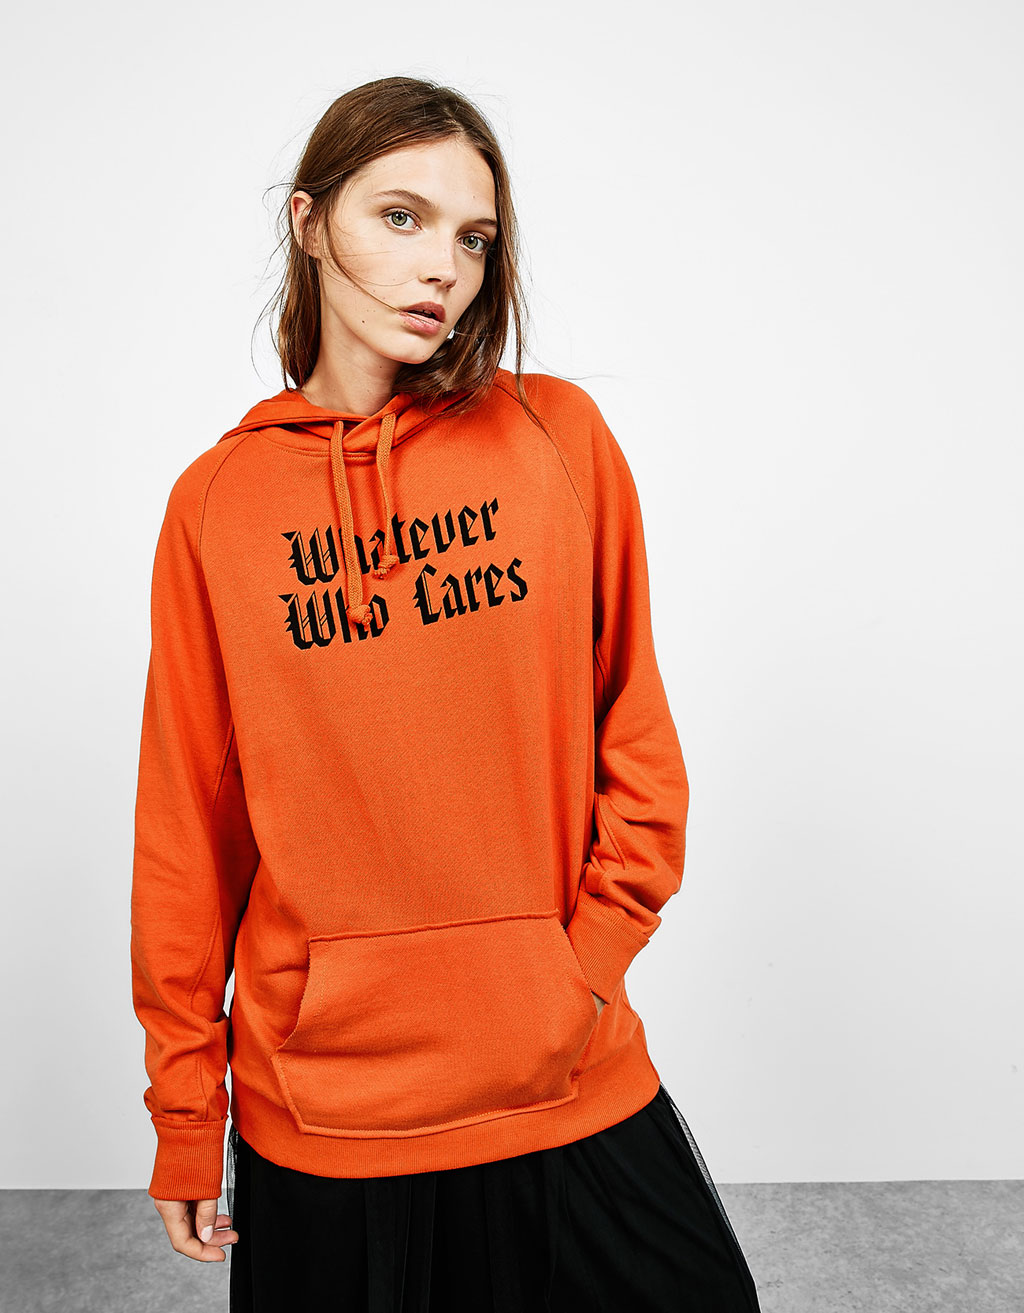 Orange sweatshirt with gothic text